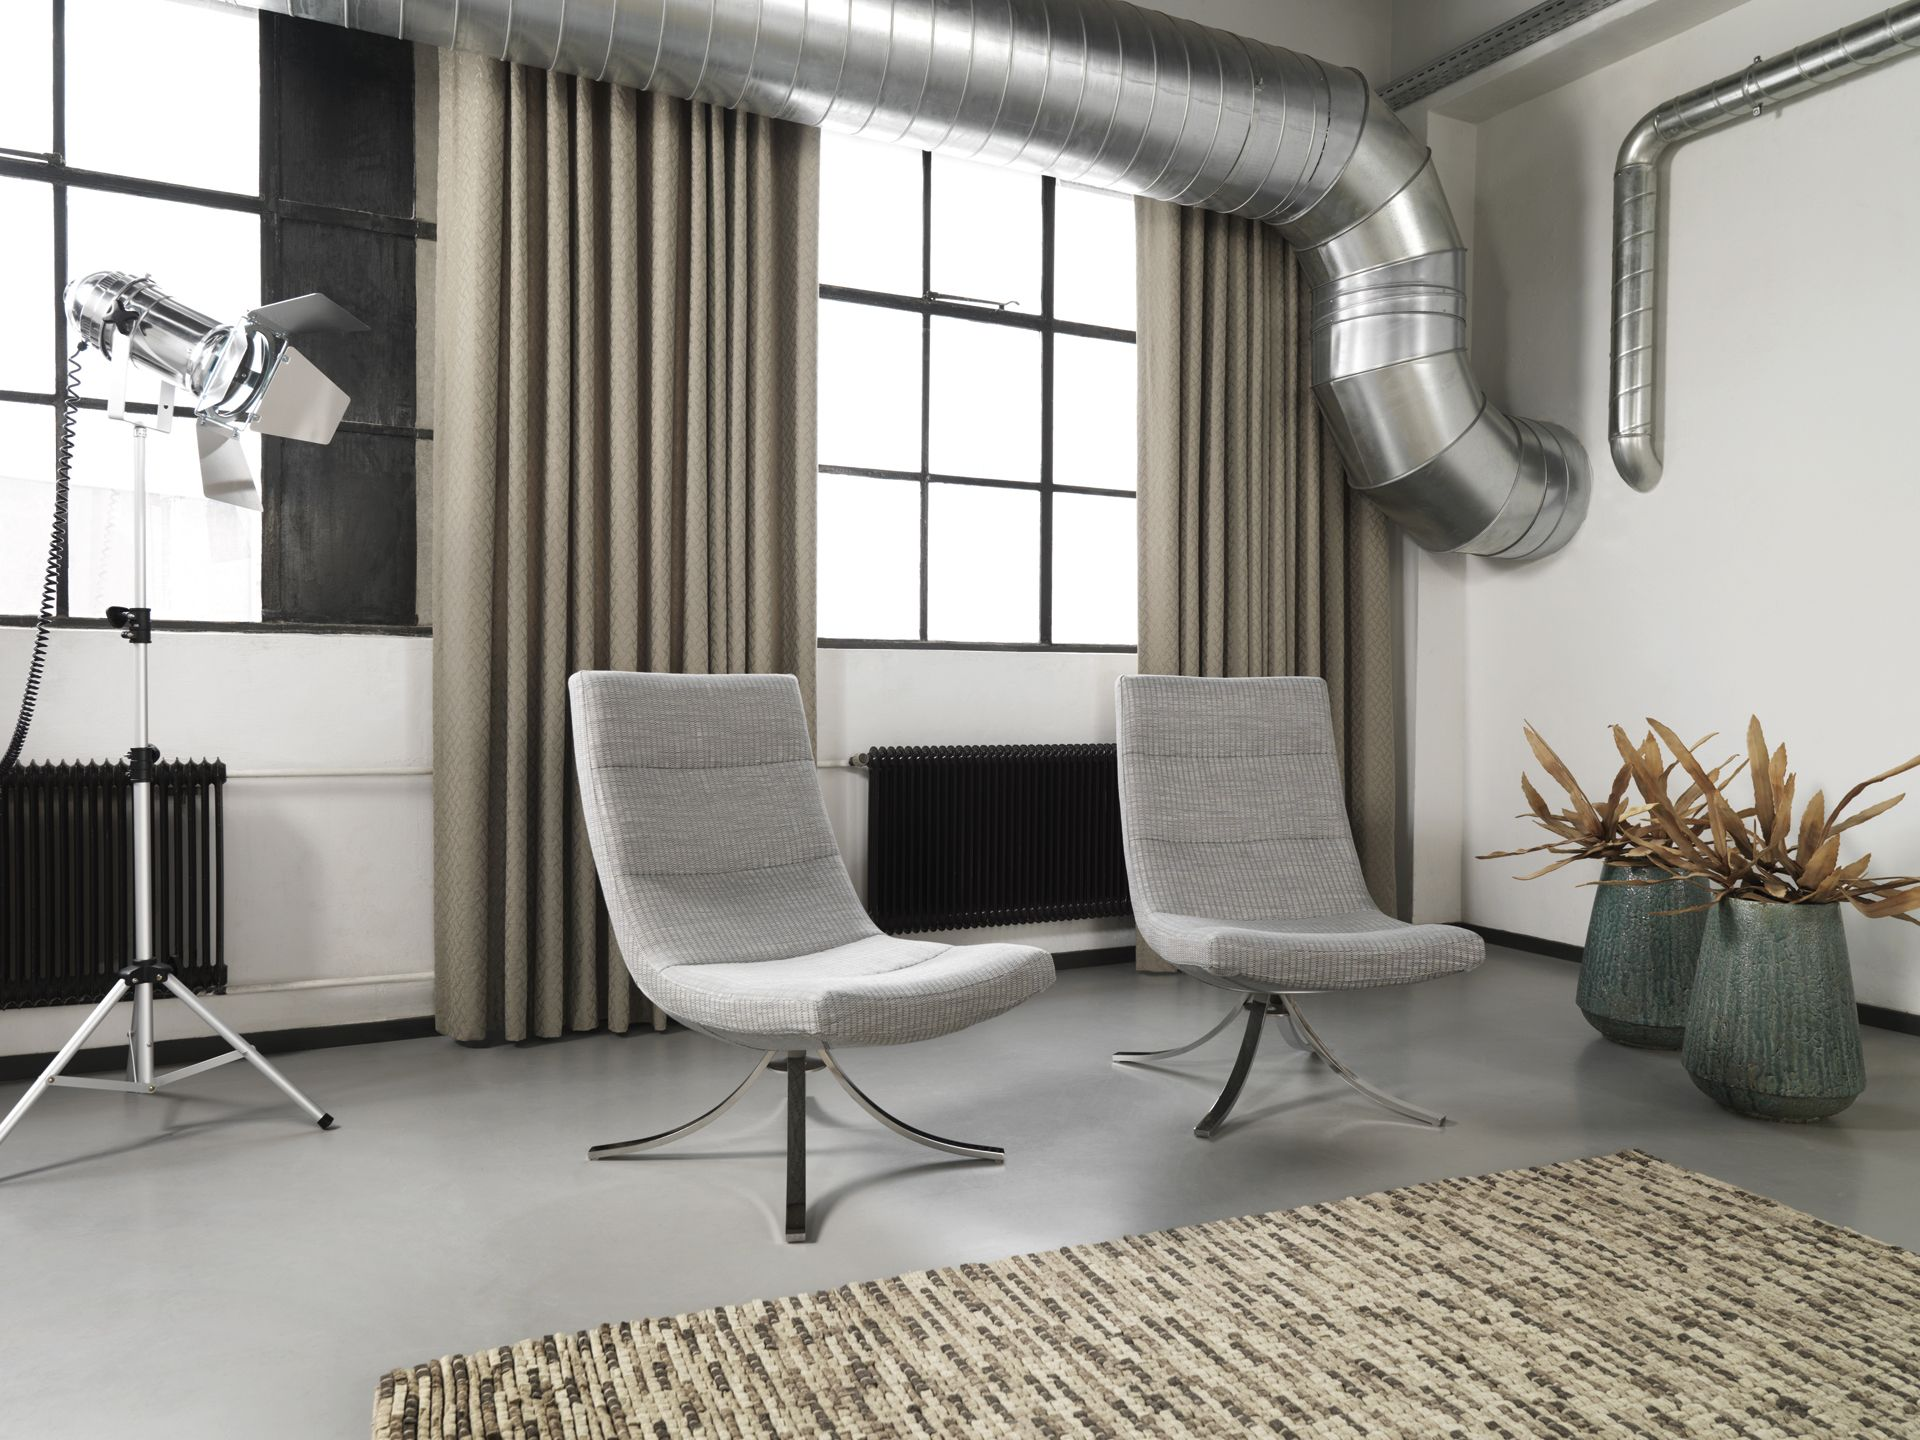 Inoxy Collection Inspired By The Industrial Look Used To